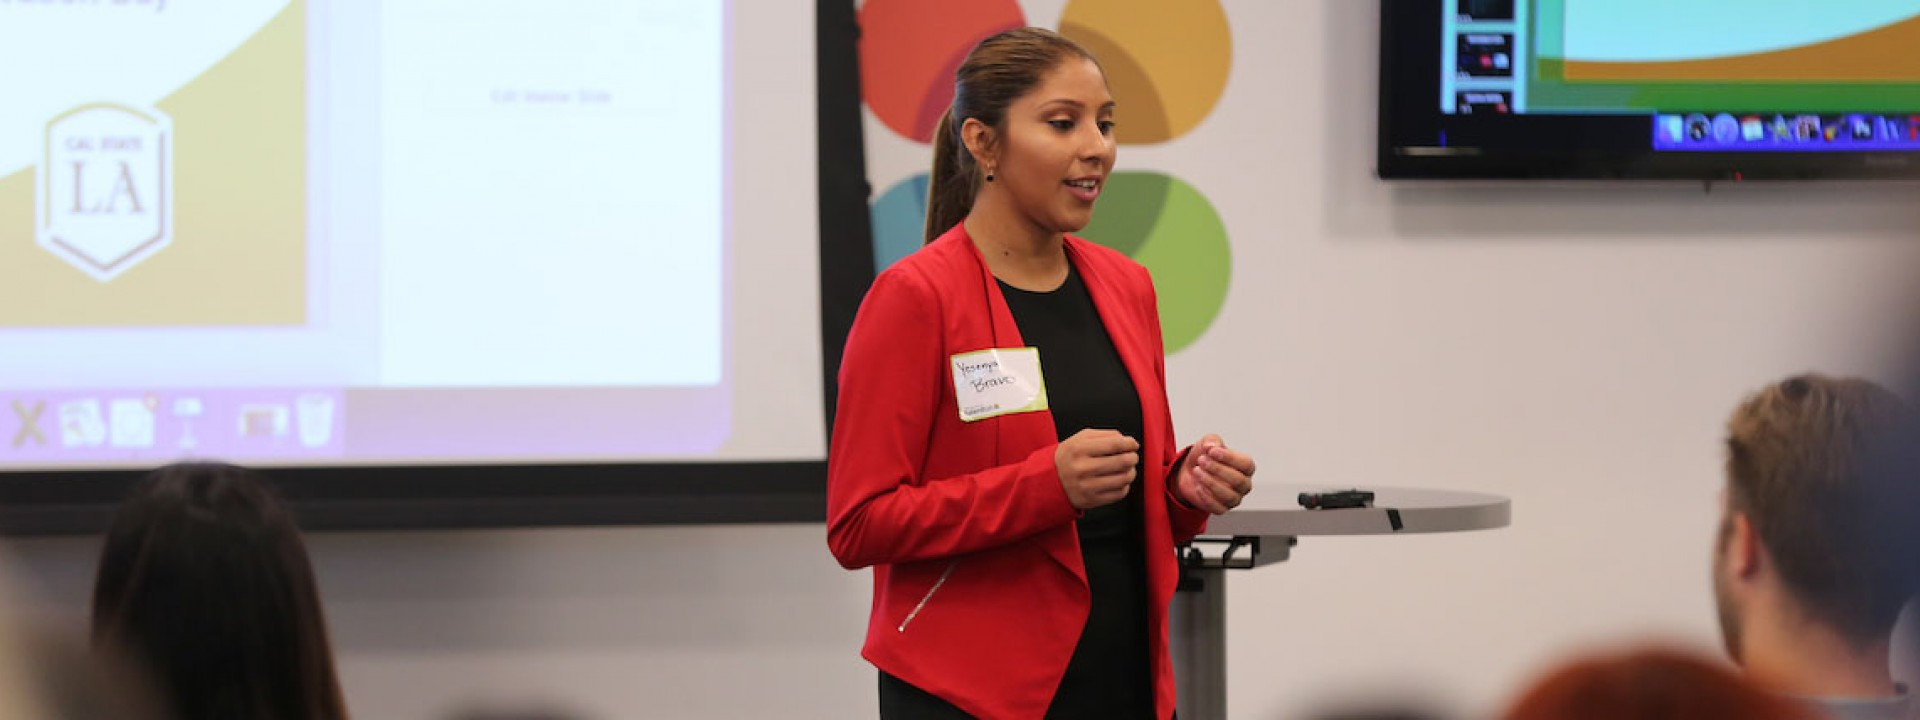 Image of a female student in a red blazer giving a presentation to her classmates.